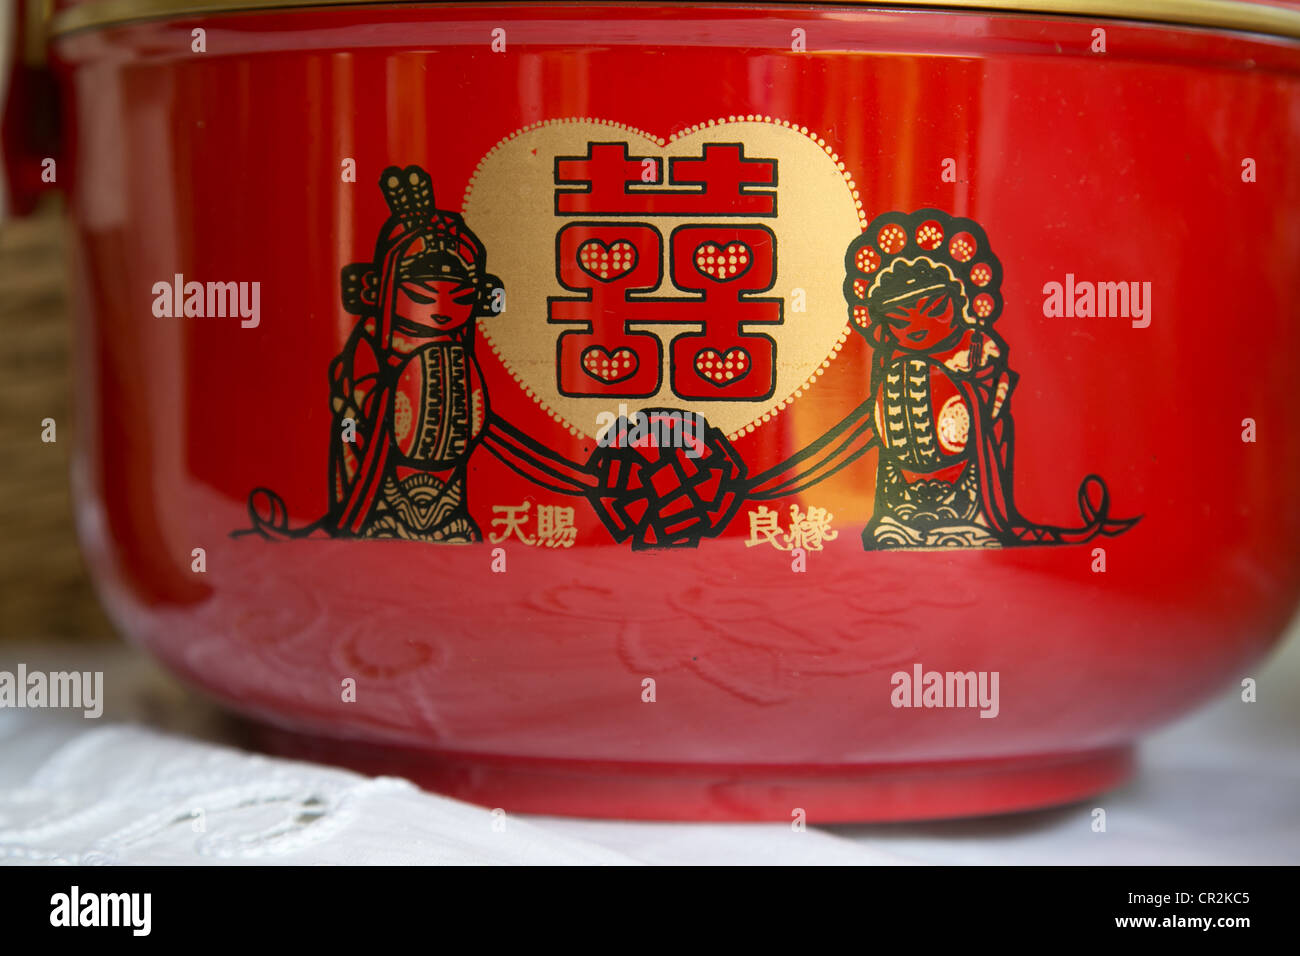 Red Chinese Double Happiness characters on a bowl symbolize marriage - Stock Image